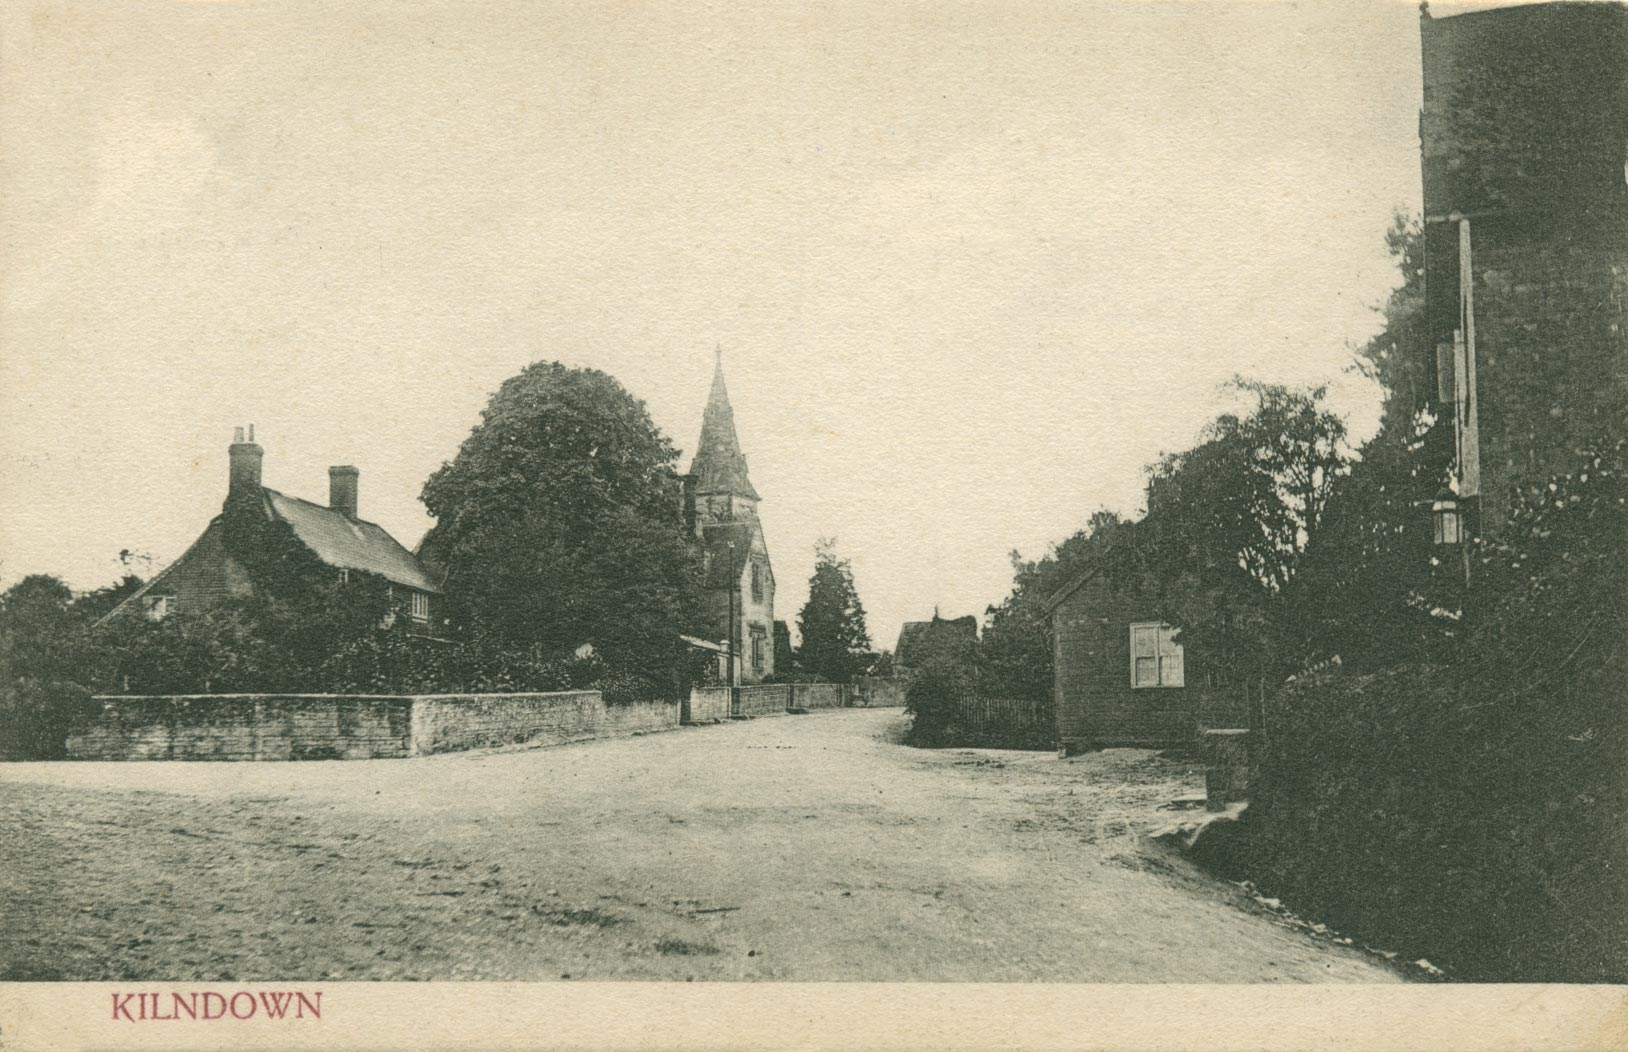 Kilndown village centre and Christ Church